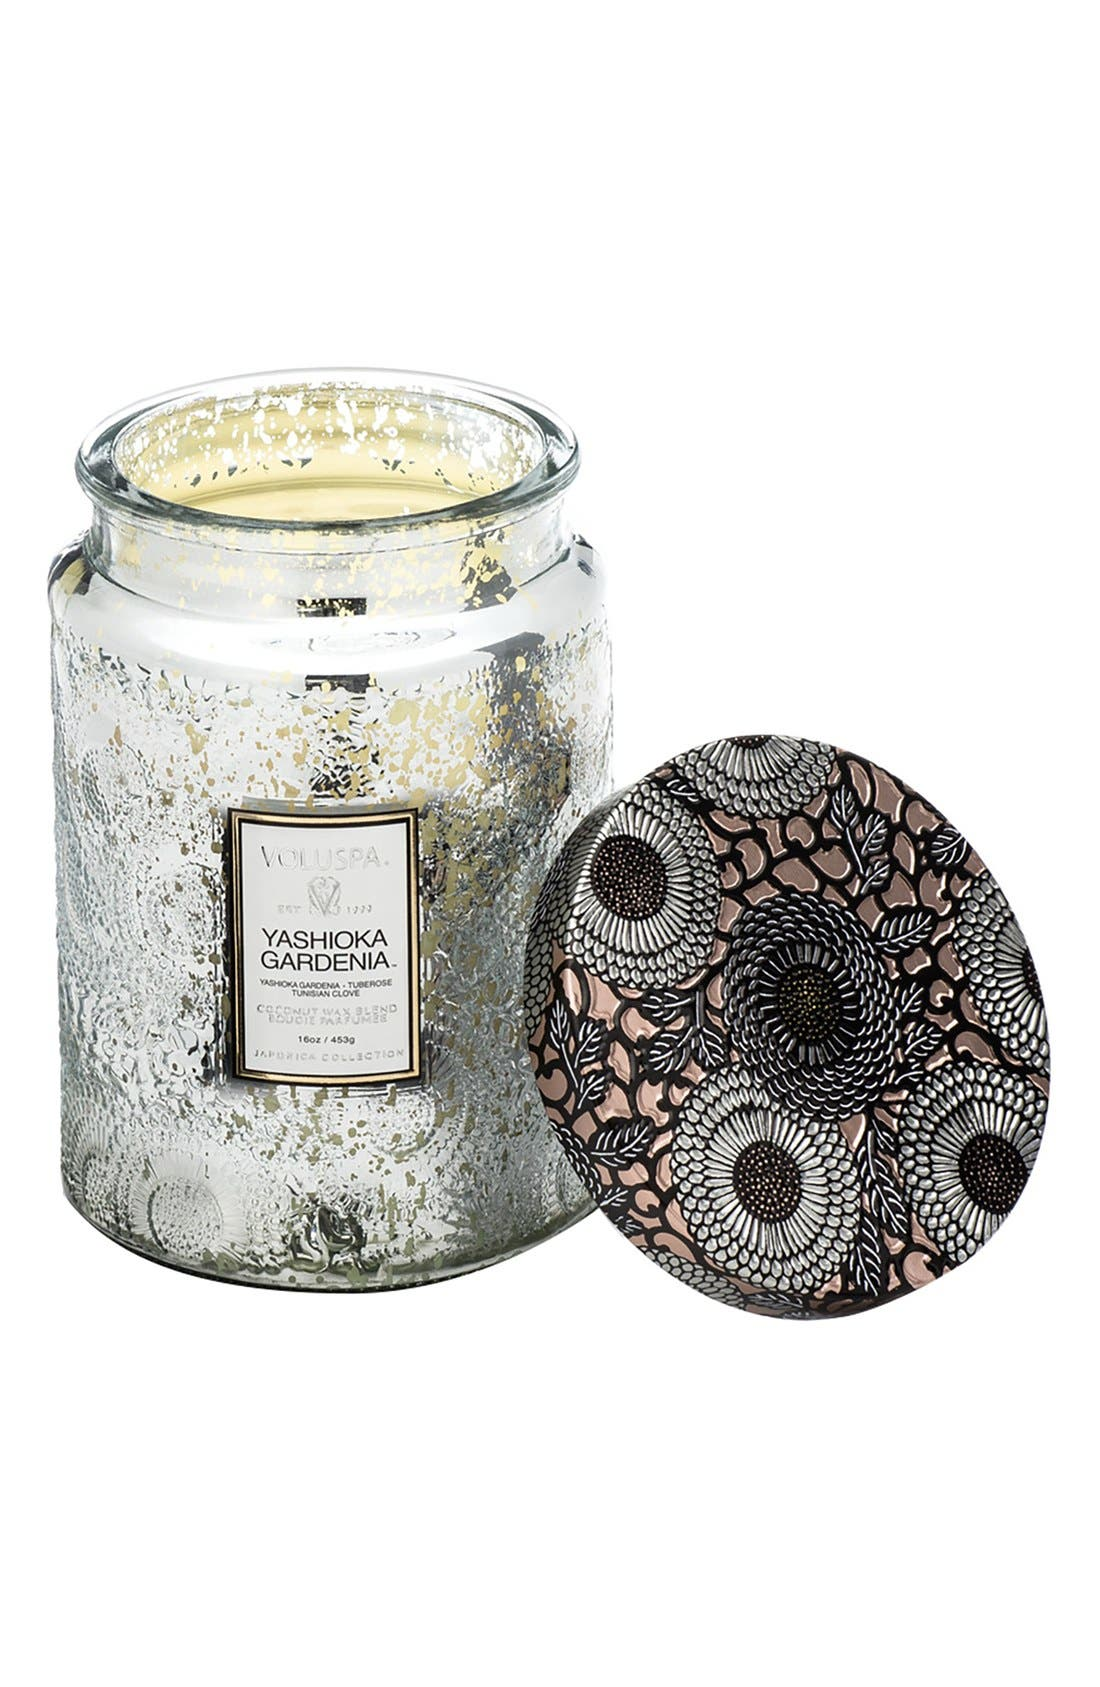 Alternate Image 1 Selected - Voluspa 'Japonica - Yashioka Gardenia' Large Embossed Glass Jar Candle (Limited Edition)